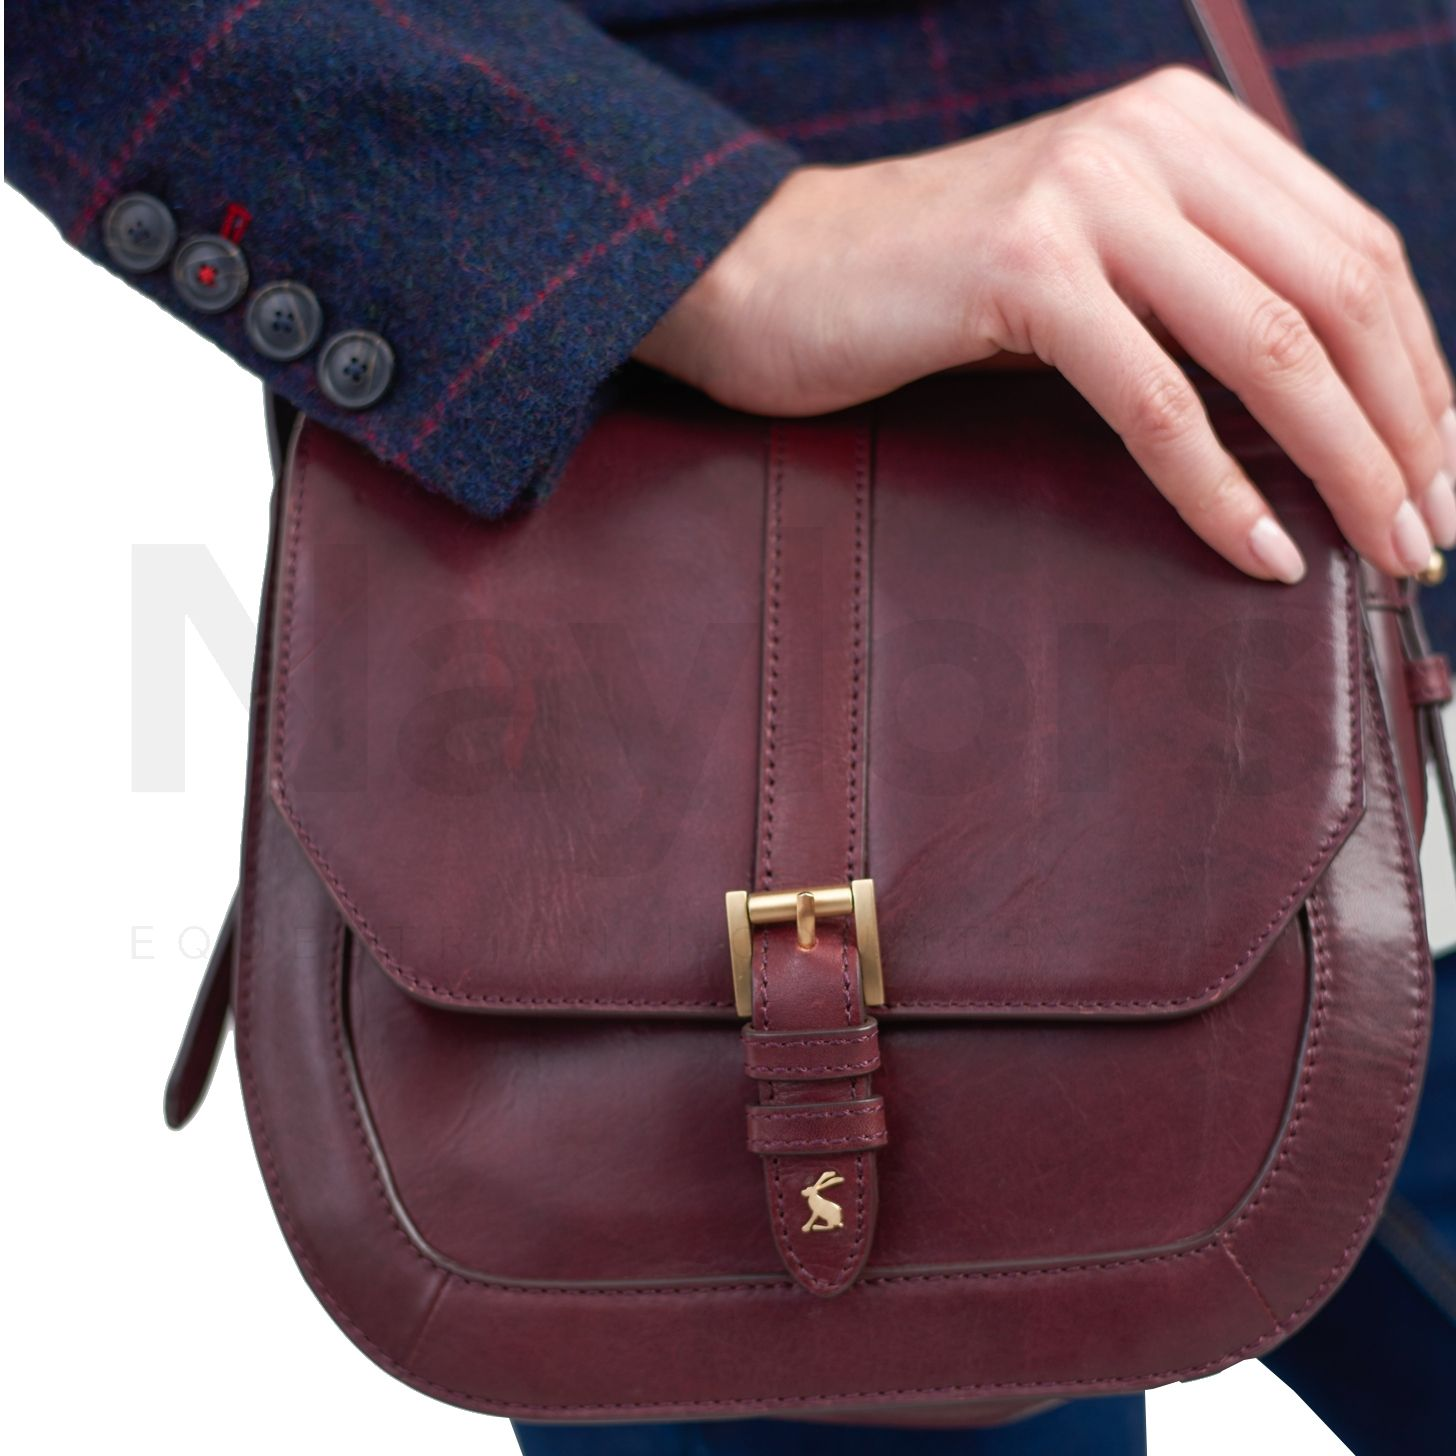 51c5bf1bb503 Joules Ladies Leather Cross Body Saddle Bag Oxblood | Naylors.com